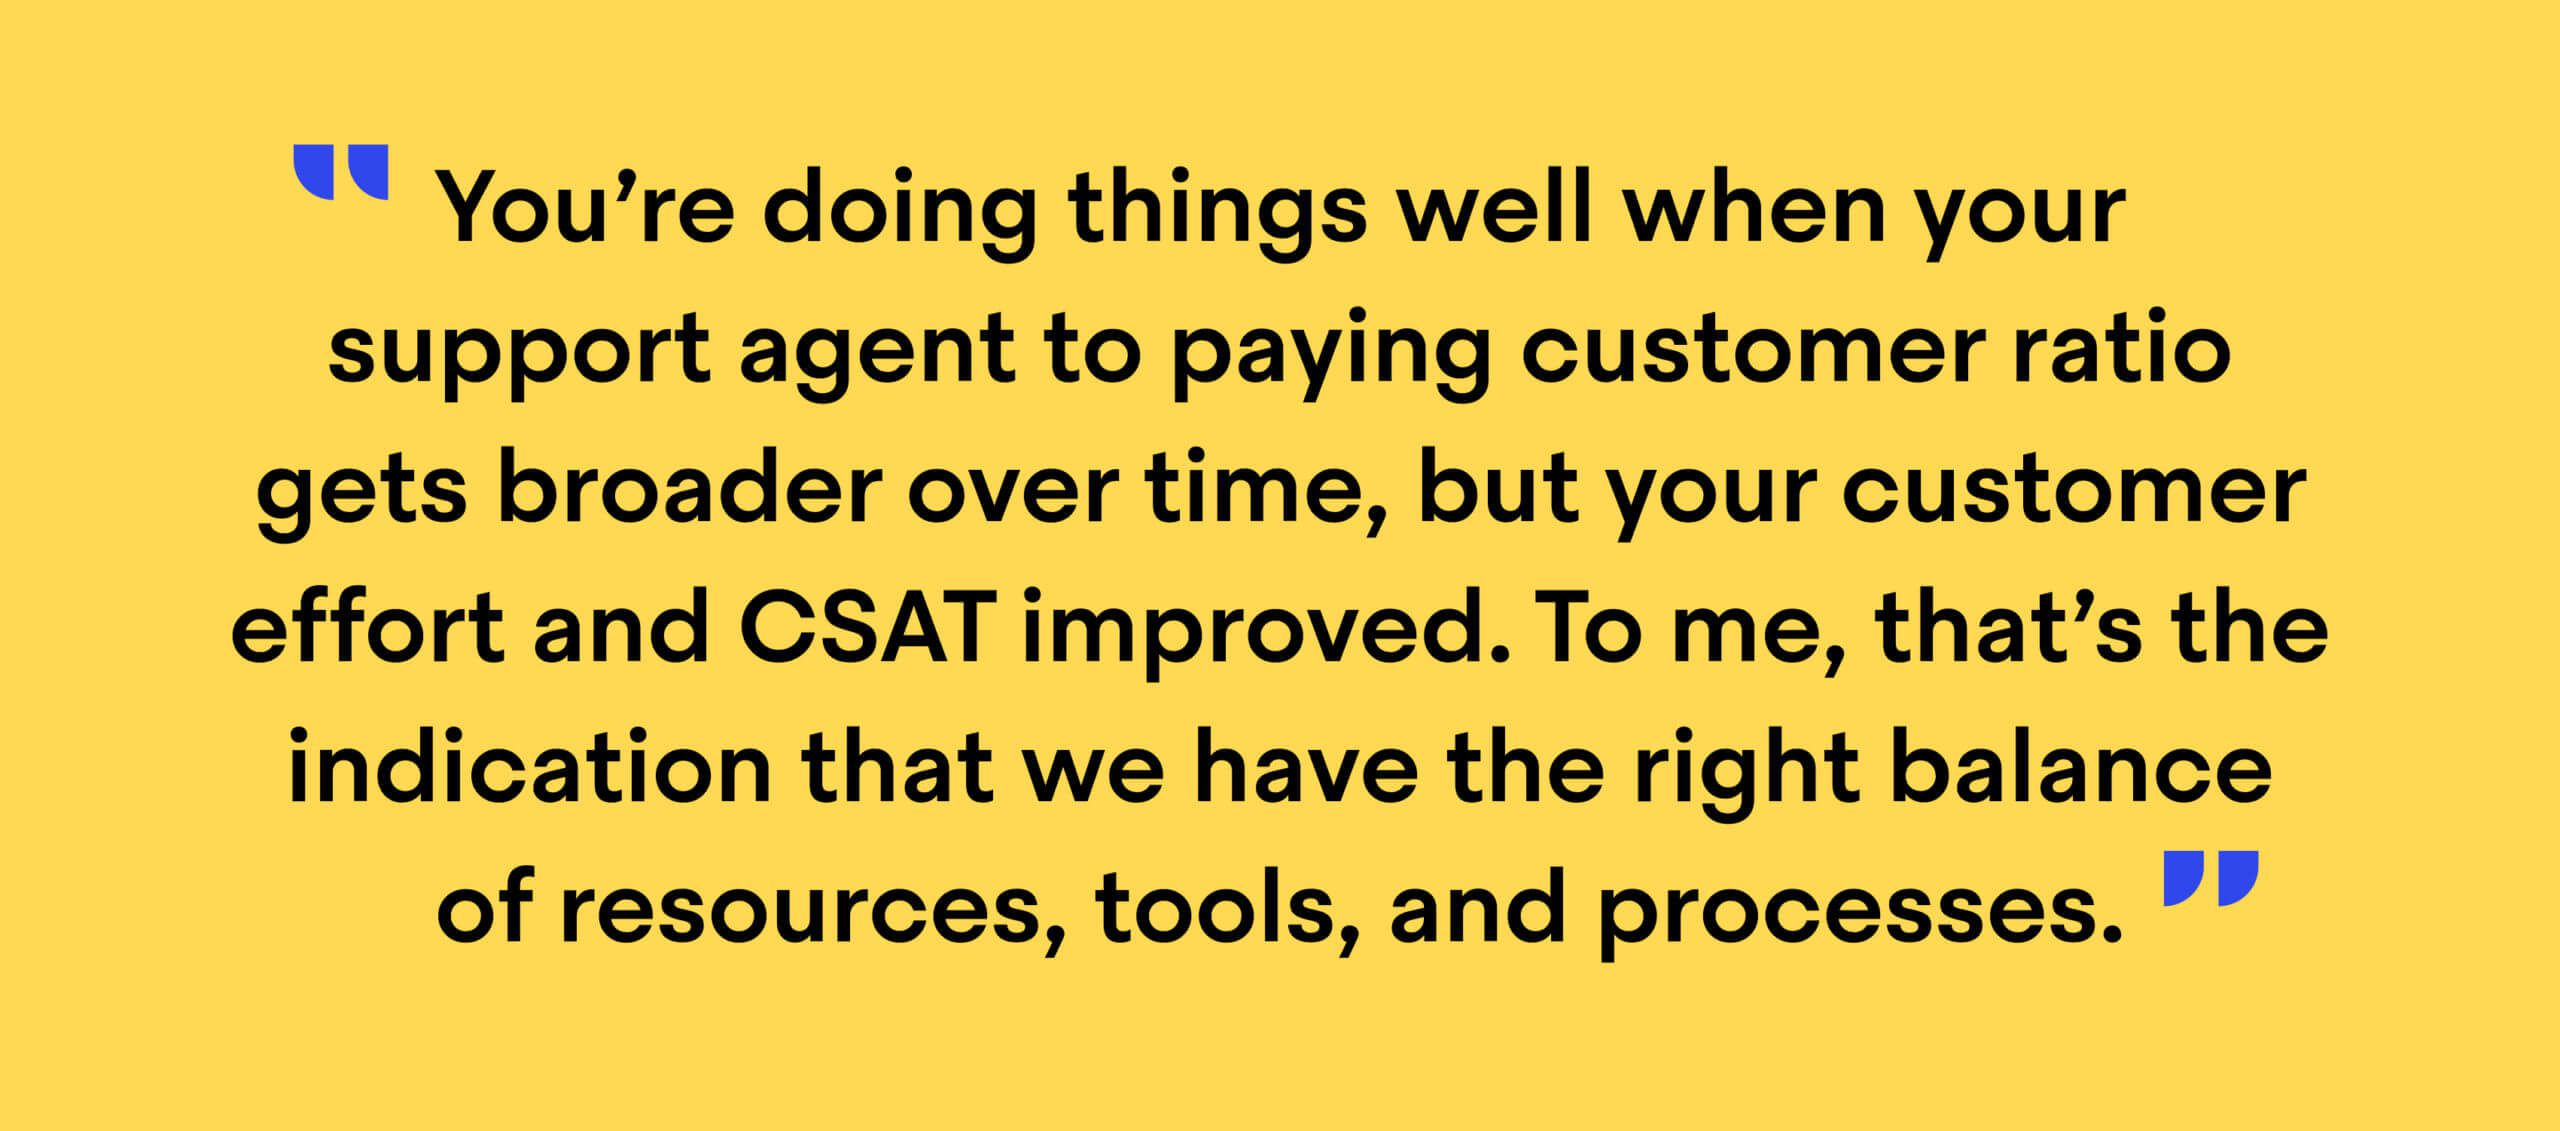 """Quote from Christine Werner, Senior Director of Customer Success at Typeform: """"You're doing things well when your support agent to paying customer ratio gets broader over time, but your customer effort and CSAT improved. To me, that's the indication that we have the right balance of resources, tools, and processes."""""""